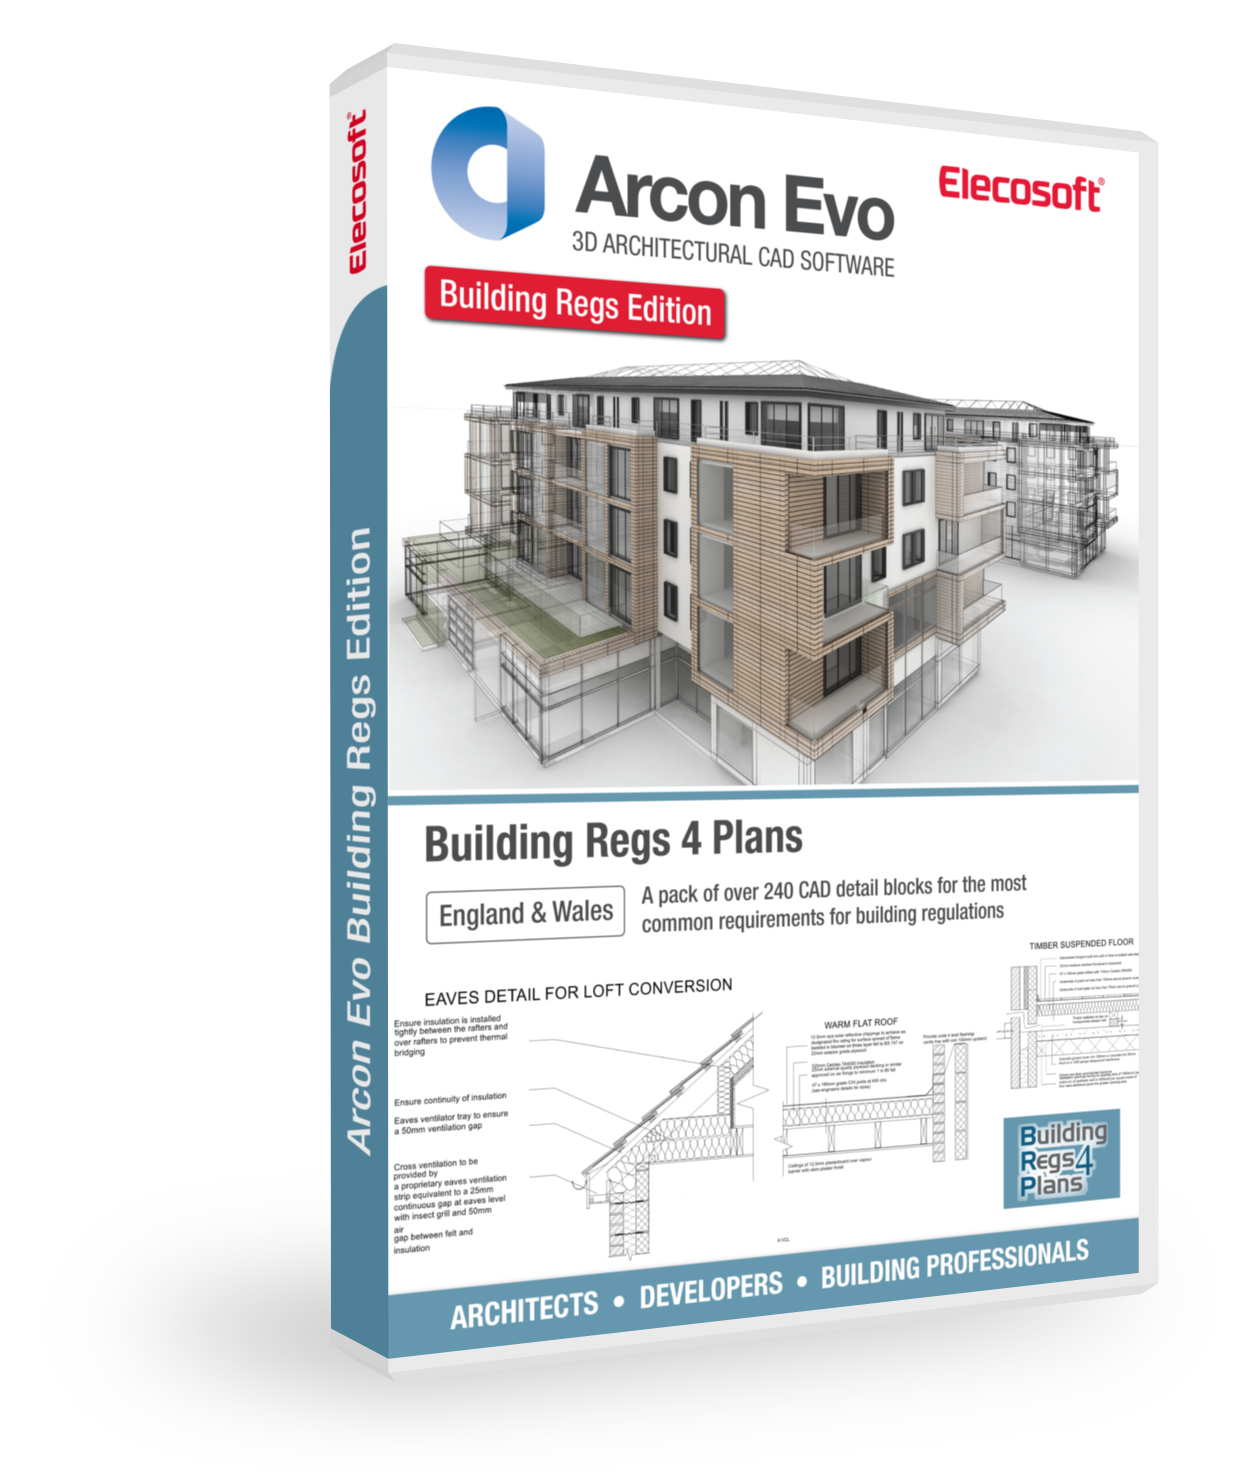 CAD software for architects